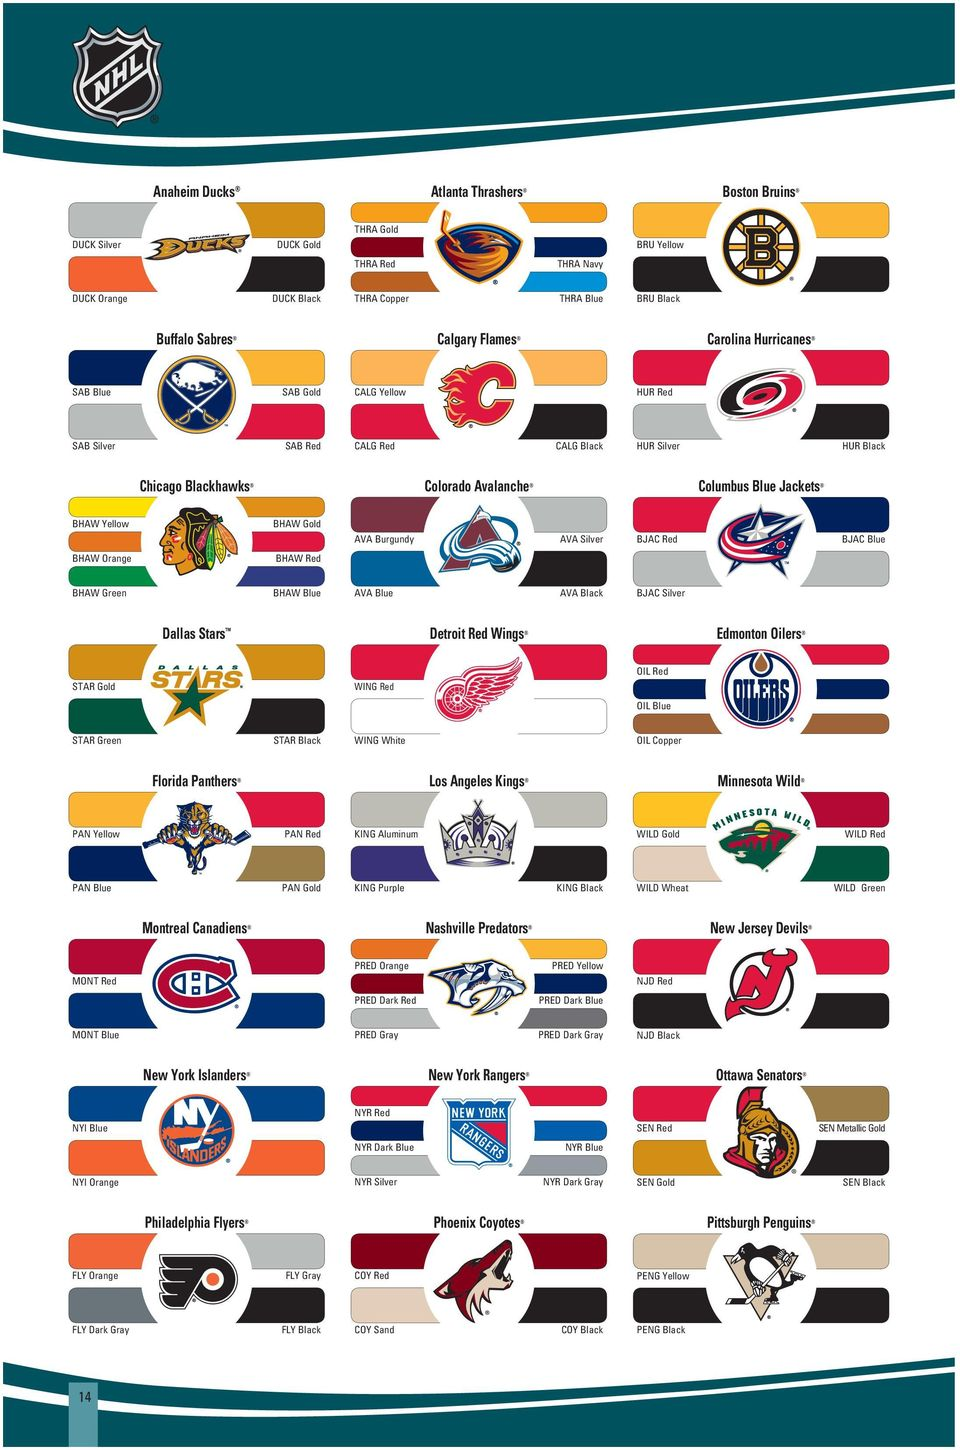 AVA Burgundy AVA Silver BJAC Red BJAC Blue BHAW Orange BHAW Red BHAW Green BHAW Blue AVA Blue AVA Black BJAC Silver Dallas Stars Detroit Red Wings Edmonton Oilers OIL Red STAR Gold WING Red OIL Blue